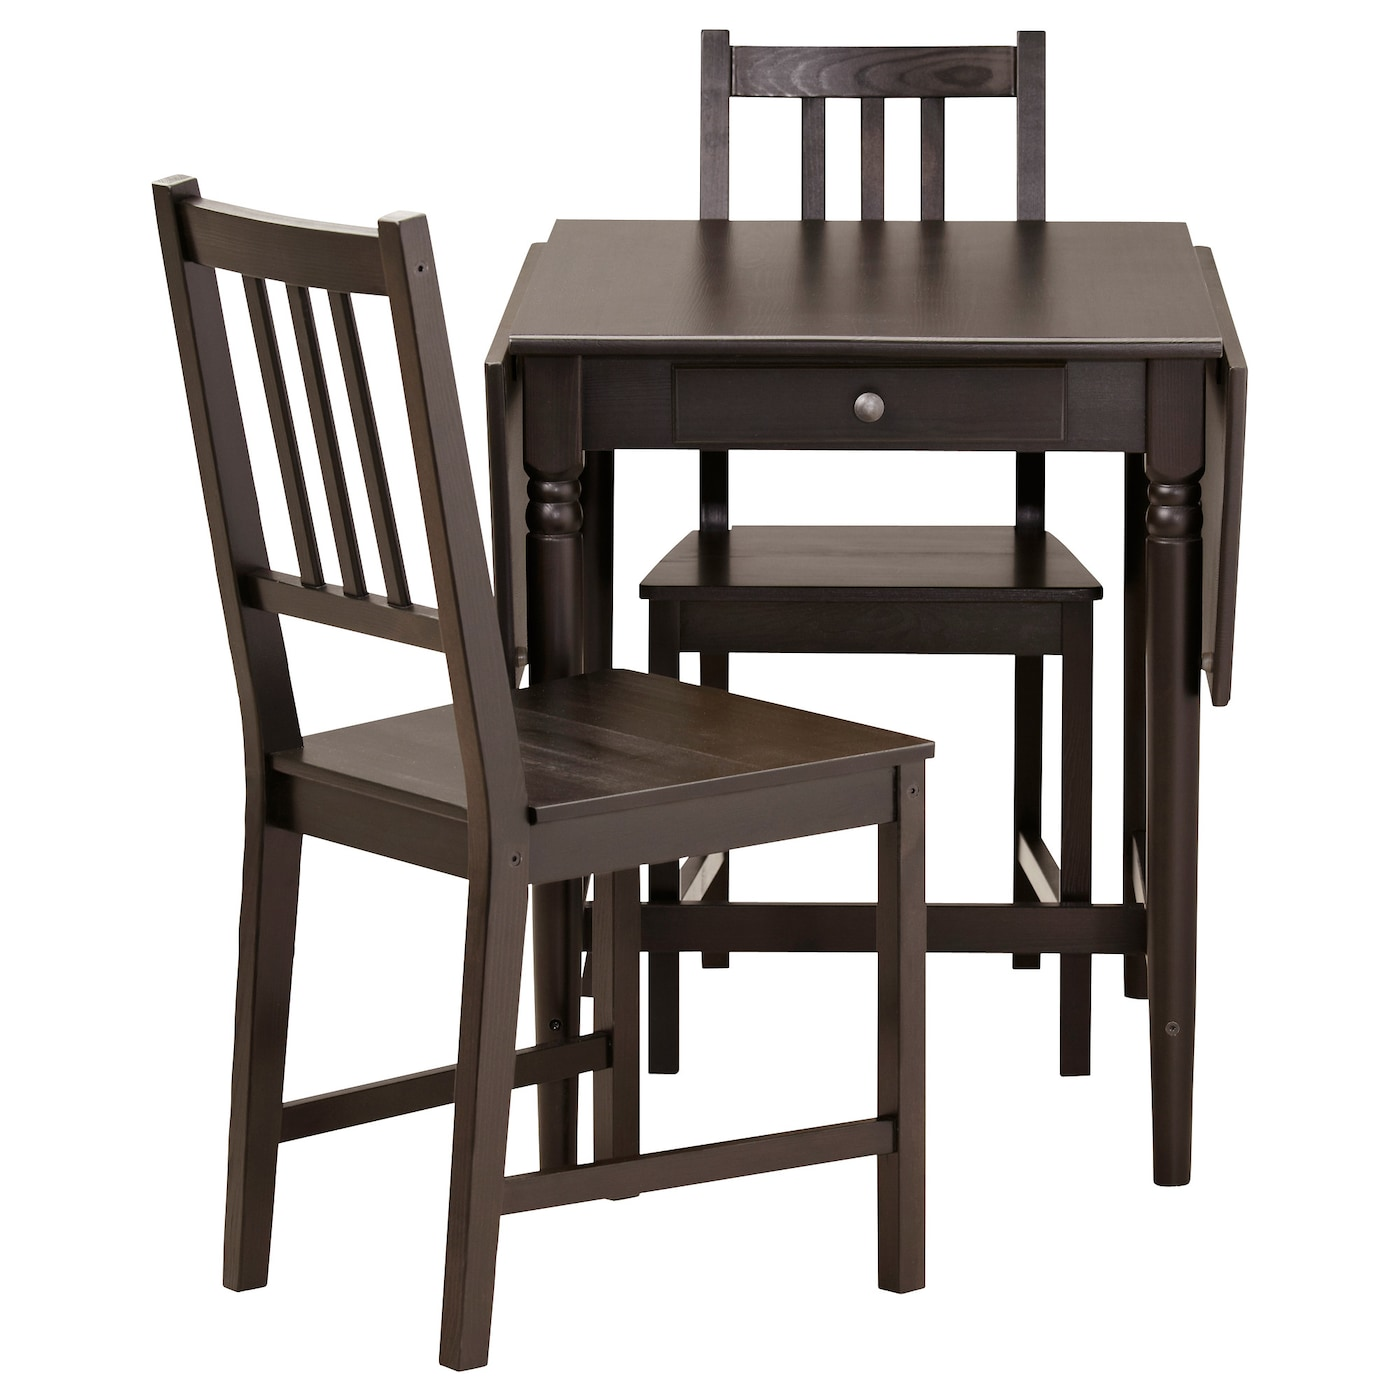 Small Dining Table Sets - 2 Seater Dining Table & Chairs | IKEA